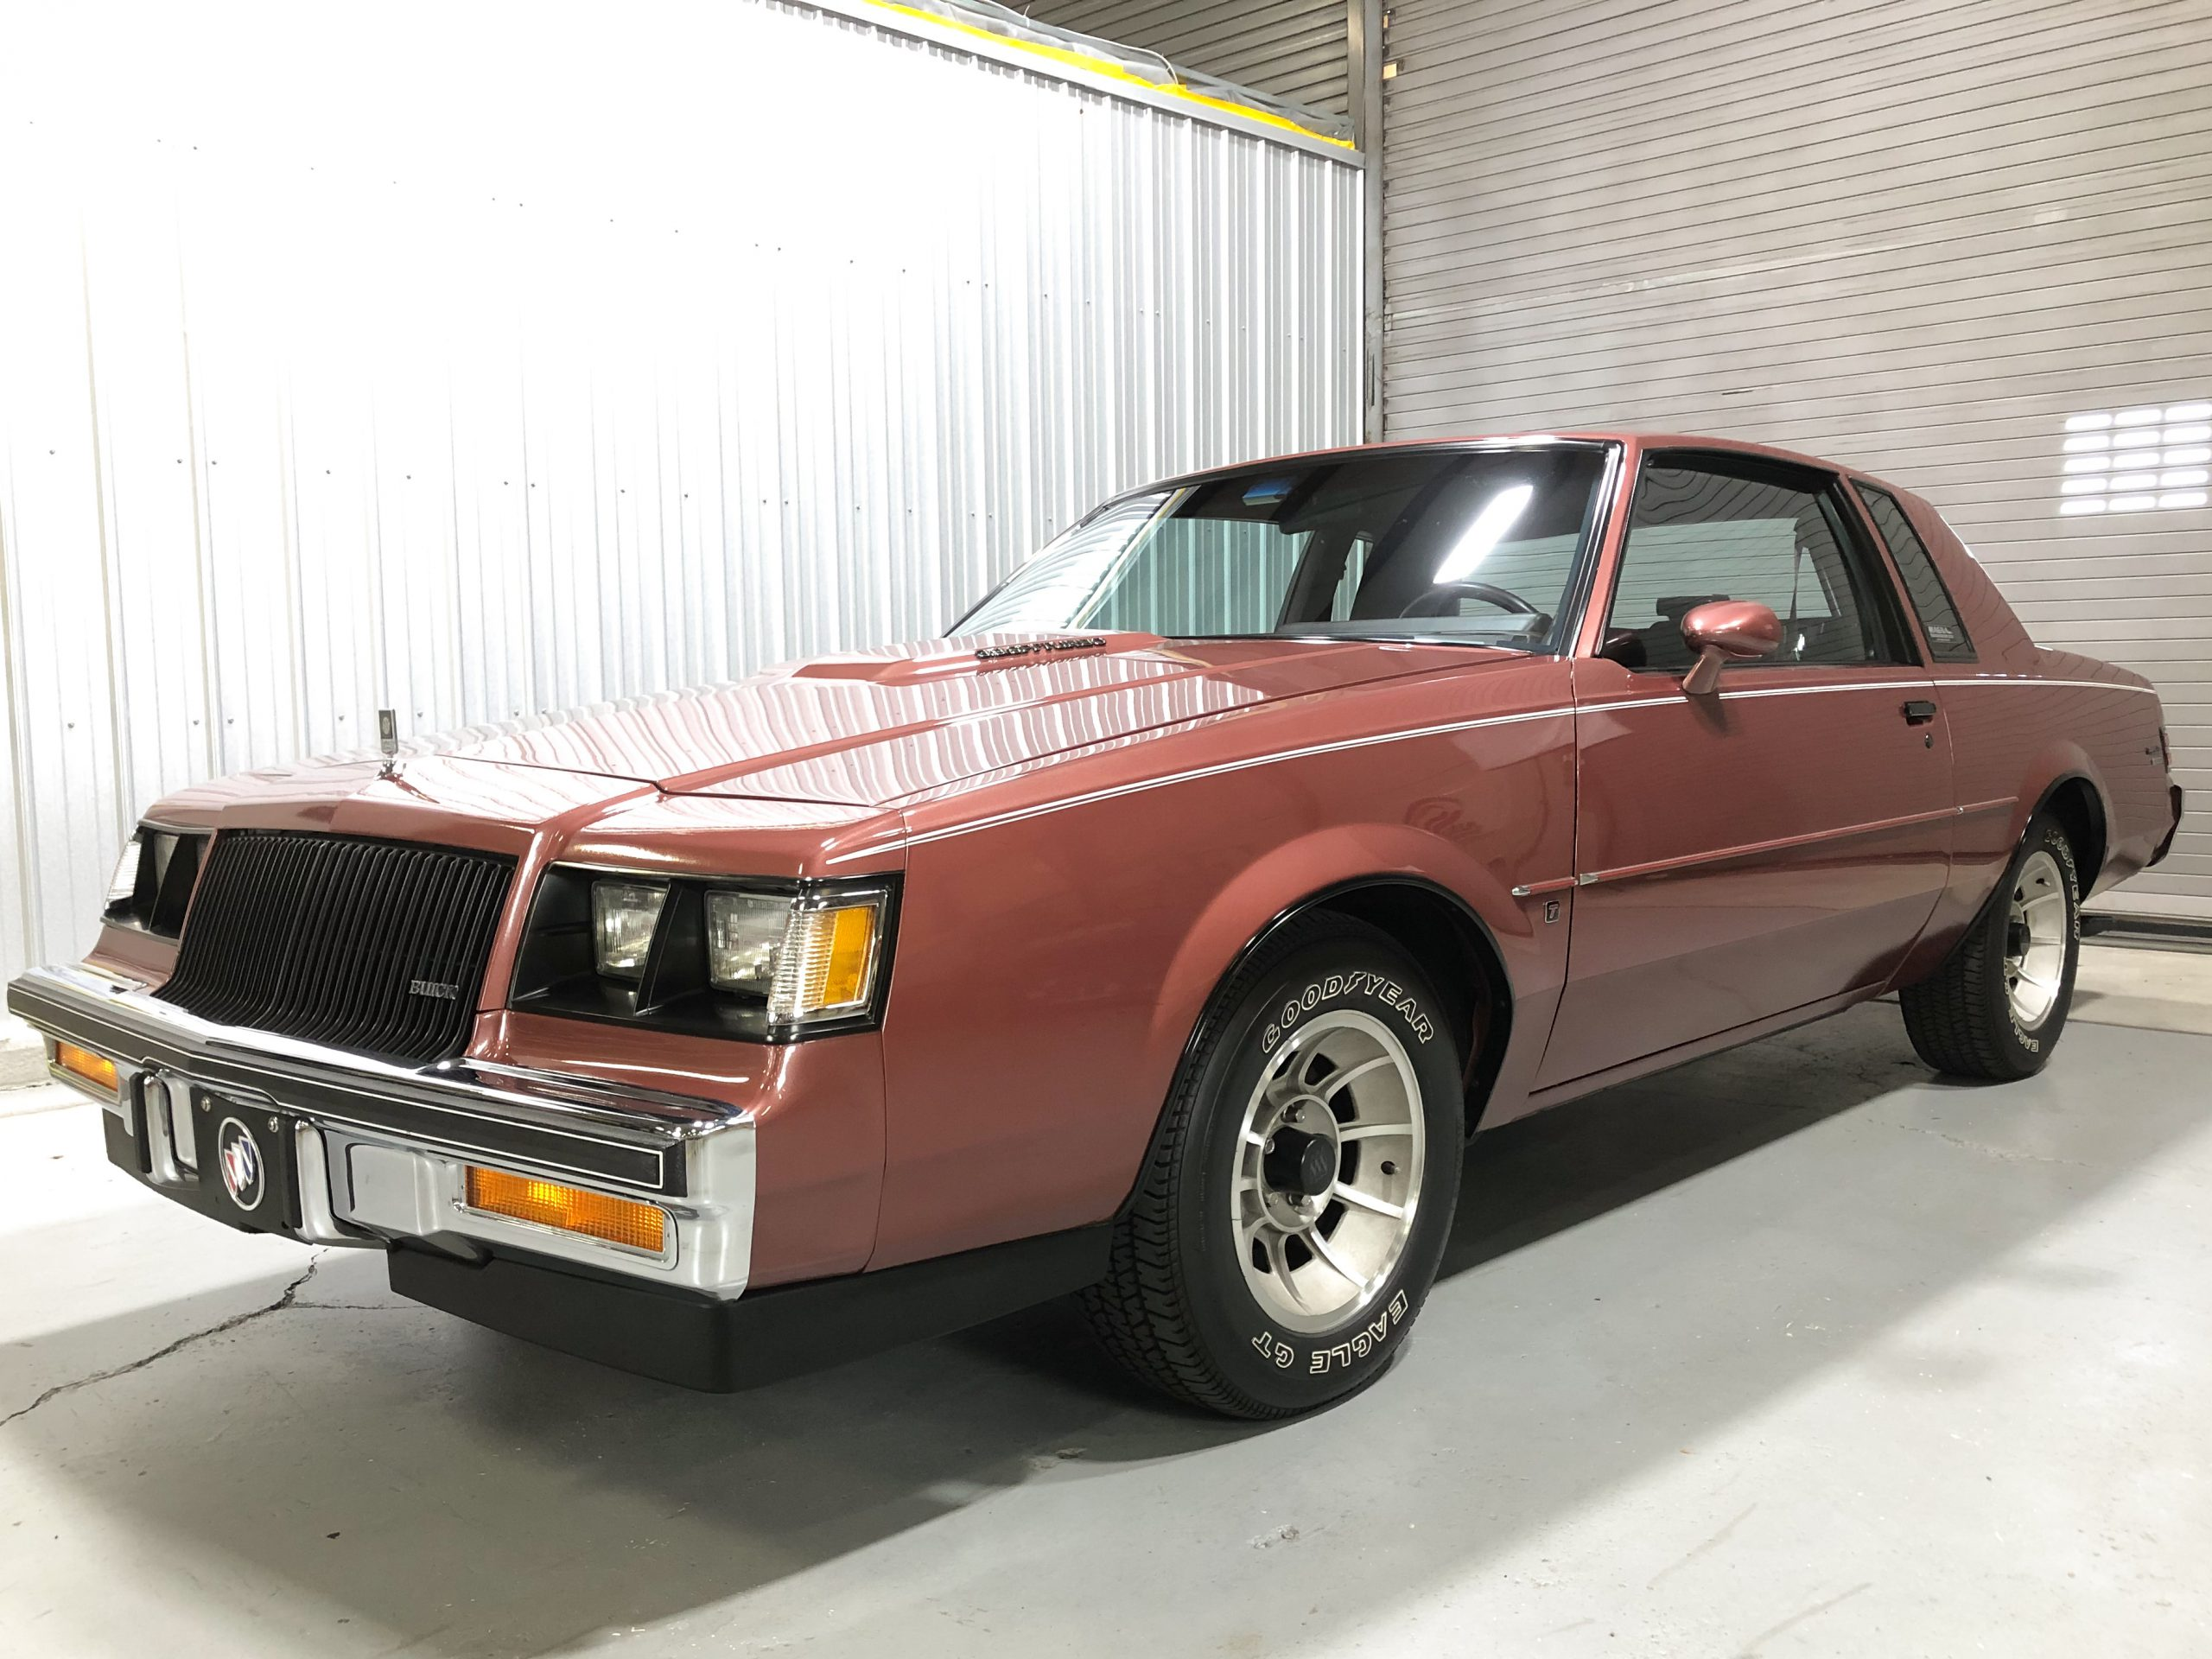 1987 Buick Regal Turbo Limited T